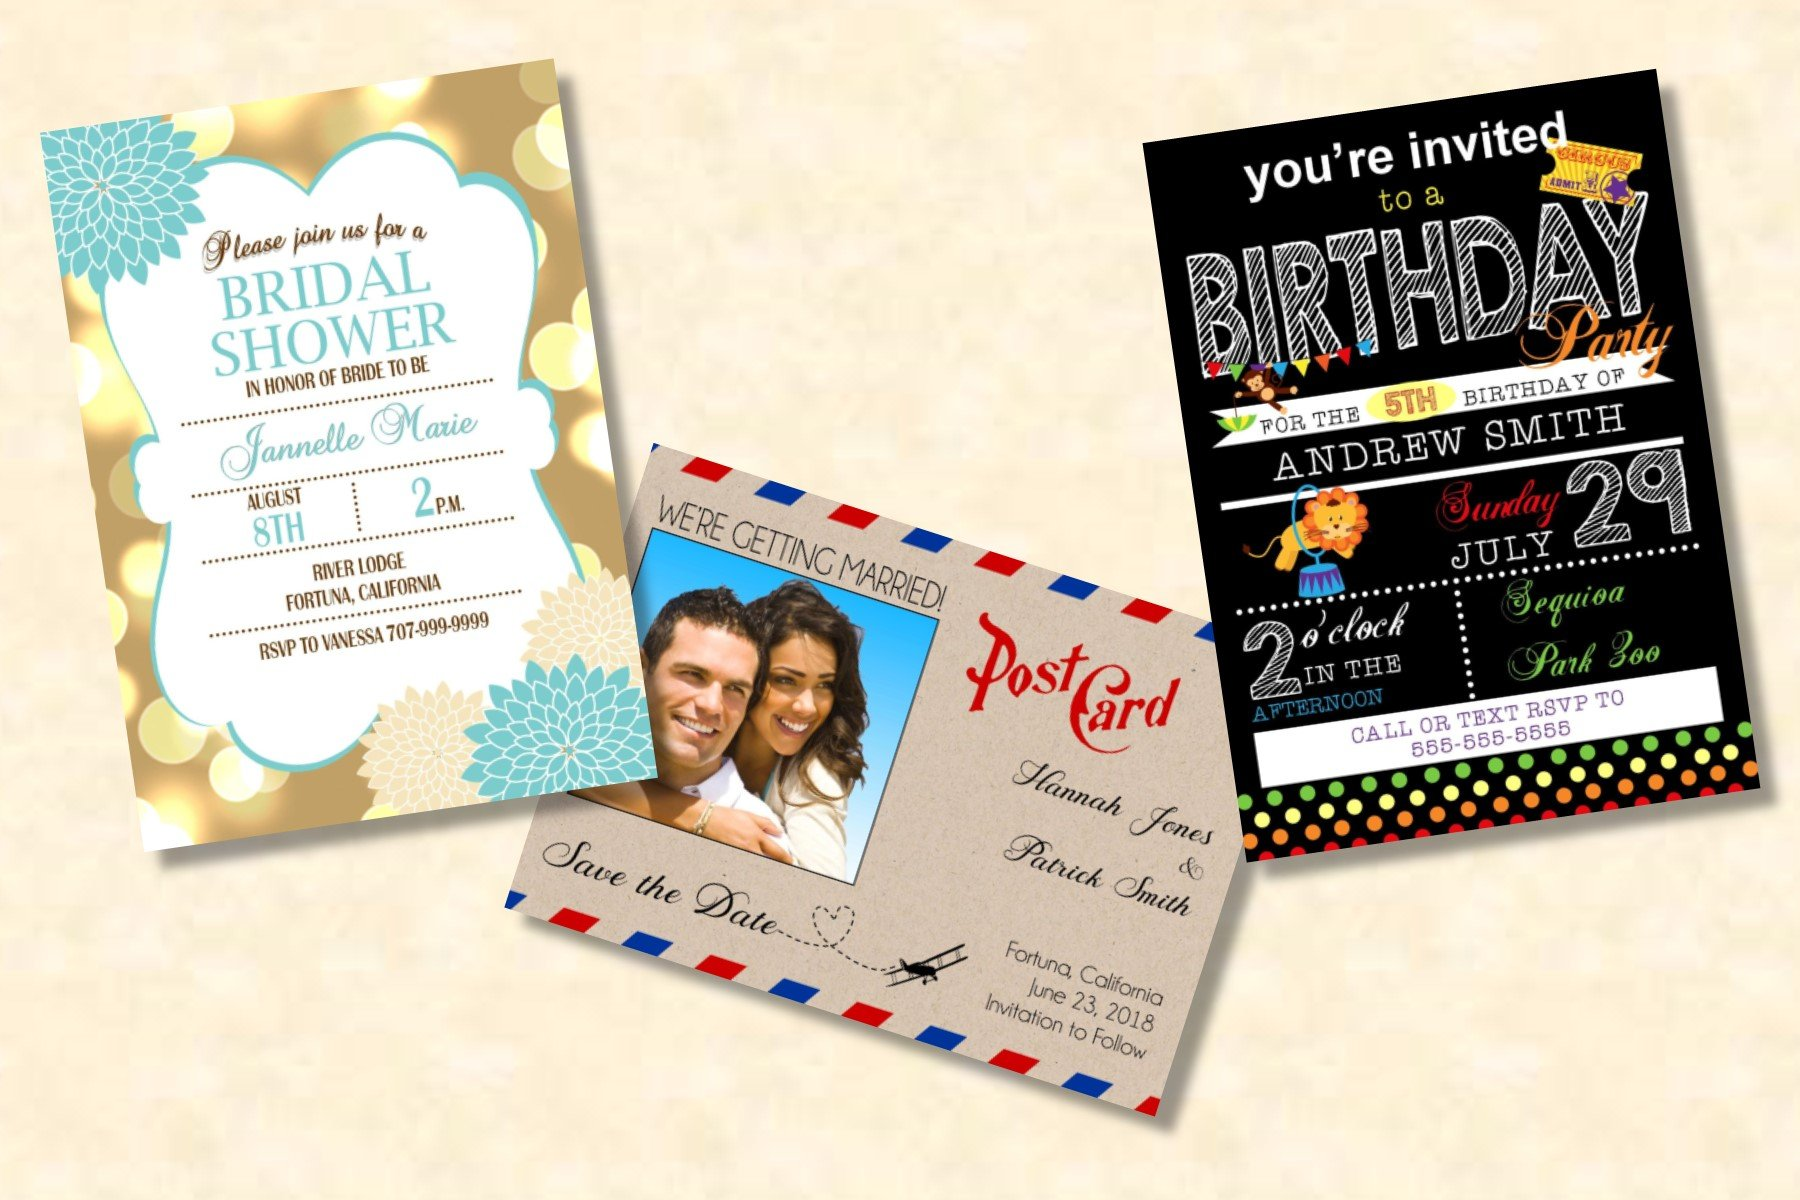 Postcard & Invitation Full Bleed Pricing 4.25x5.5 up to 5x7